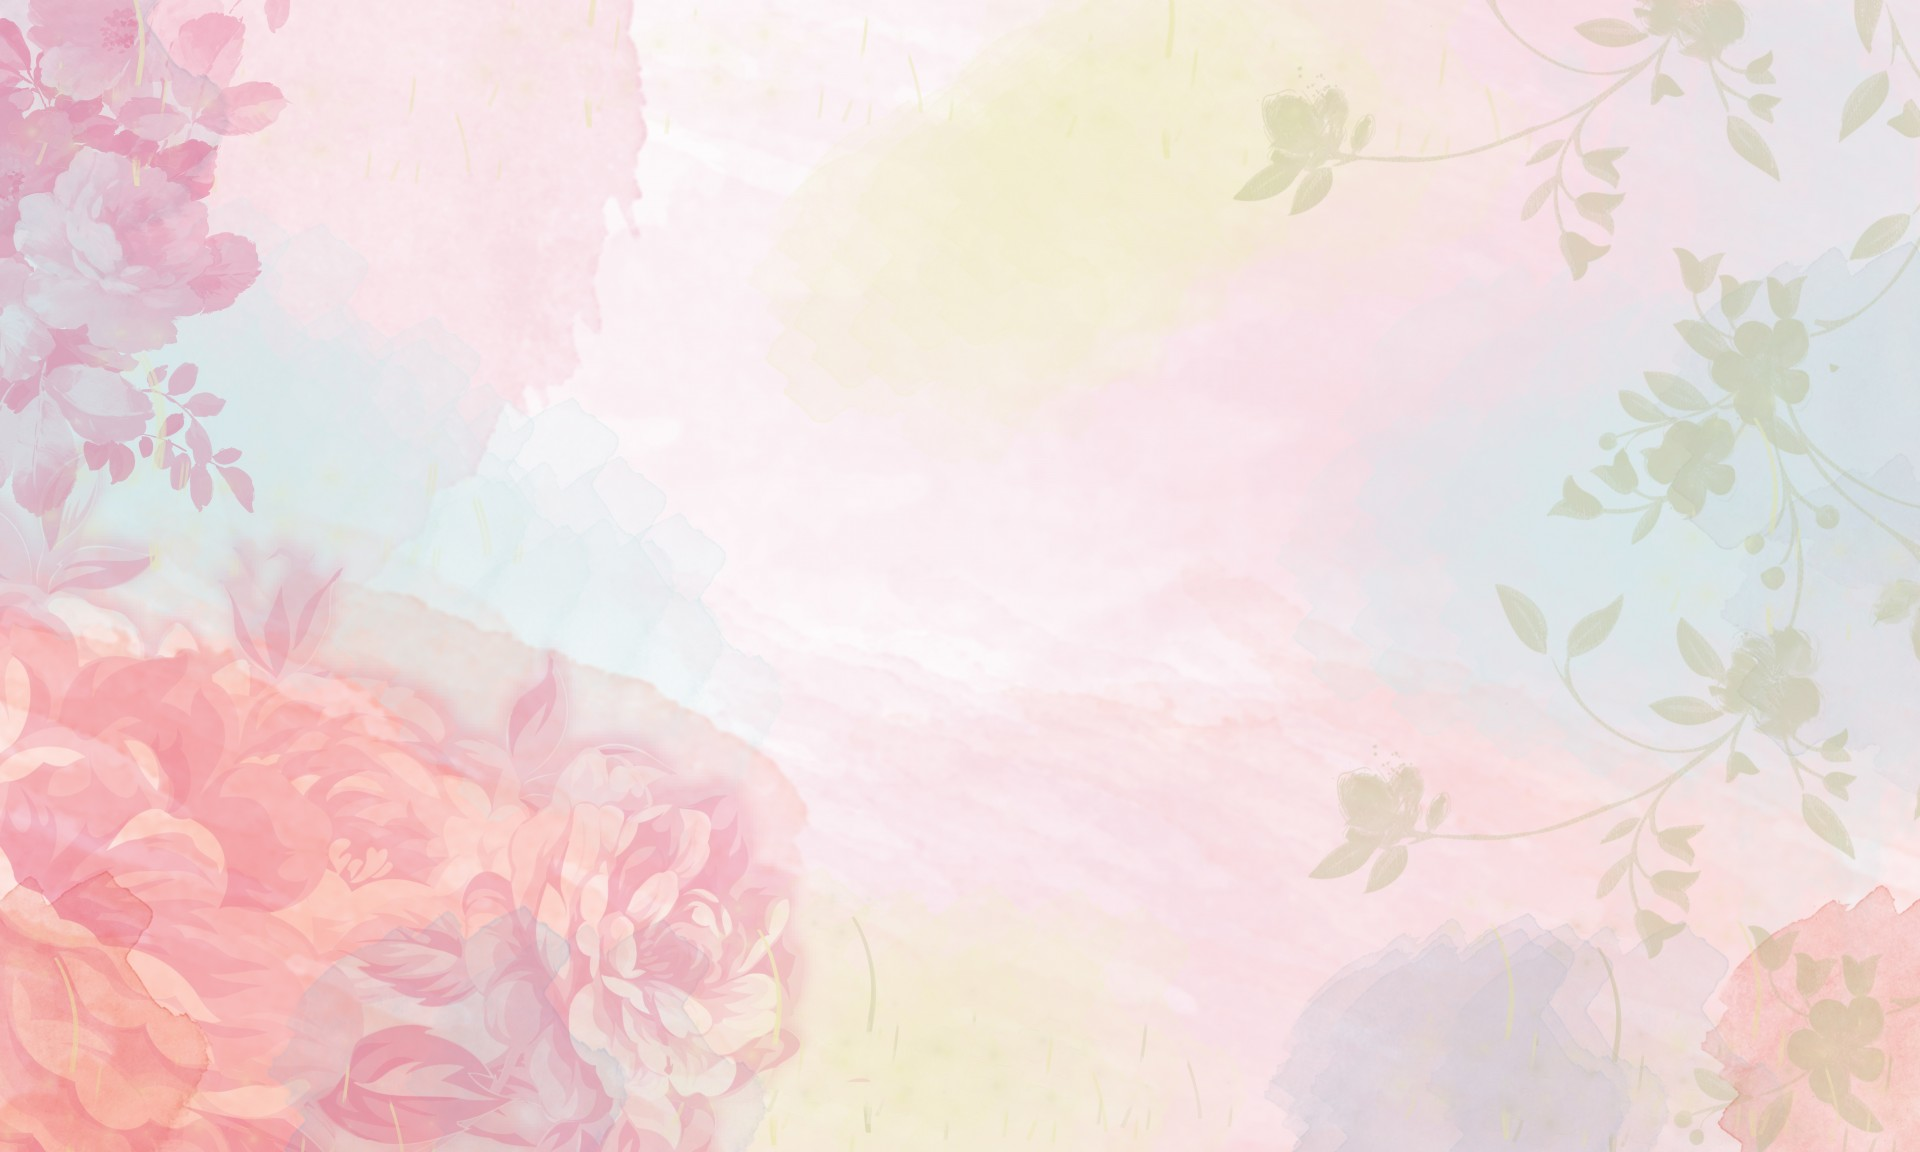 Free Watercolor Floral Background At Getdrawings Free Download